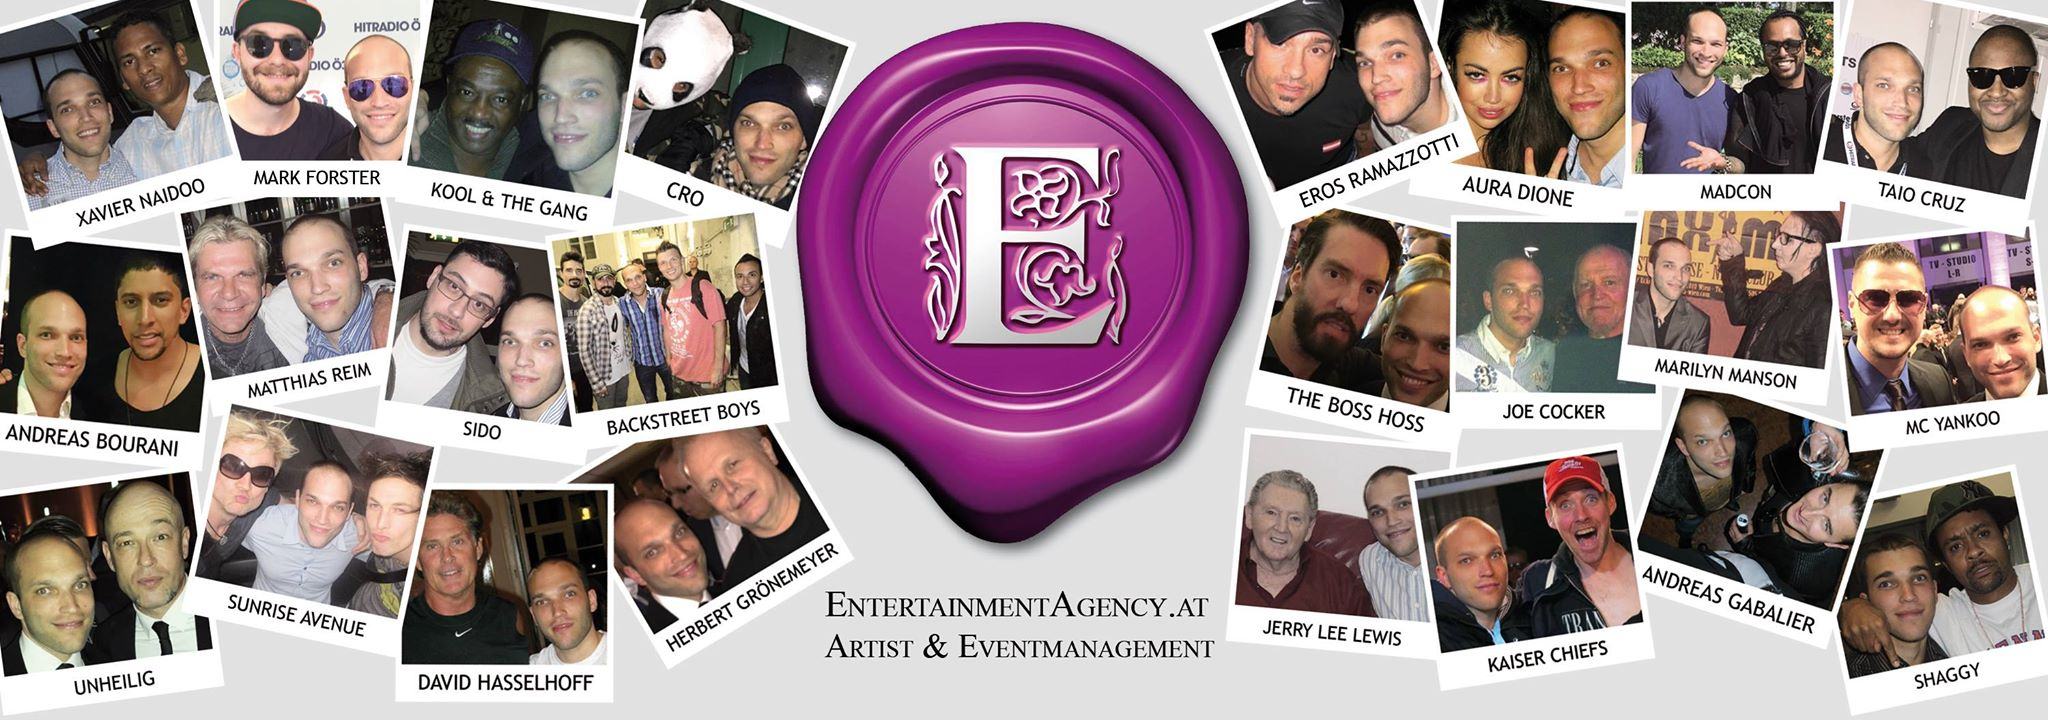 booking-stars-entertainment-agency-vienna